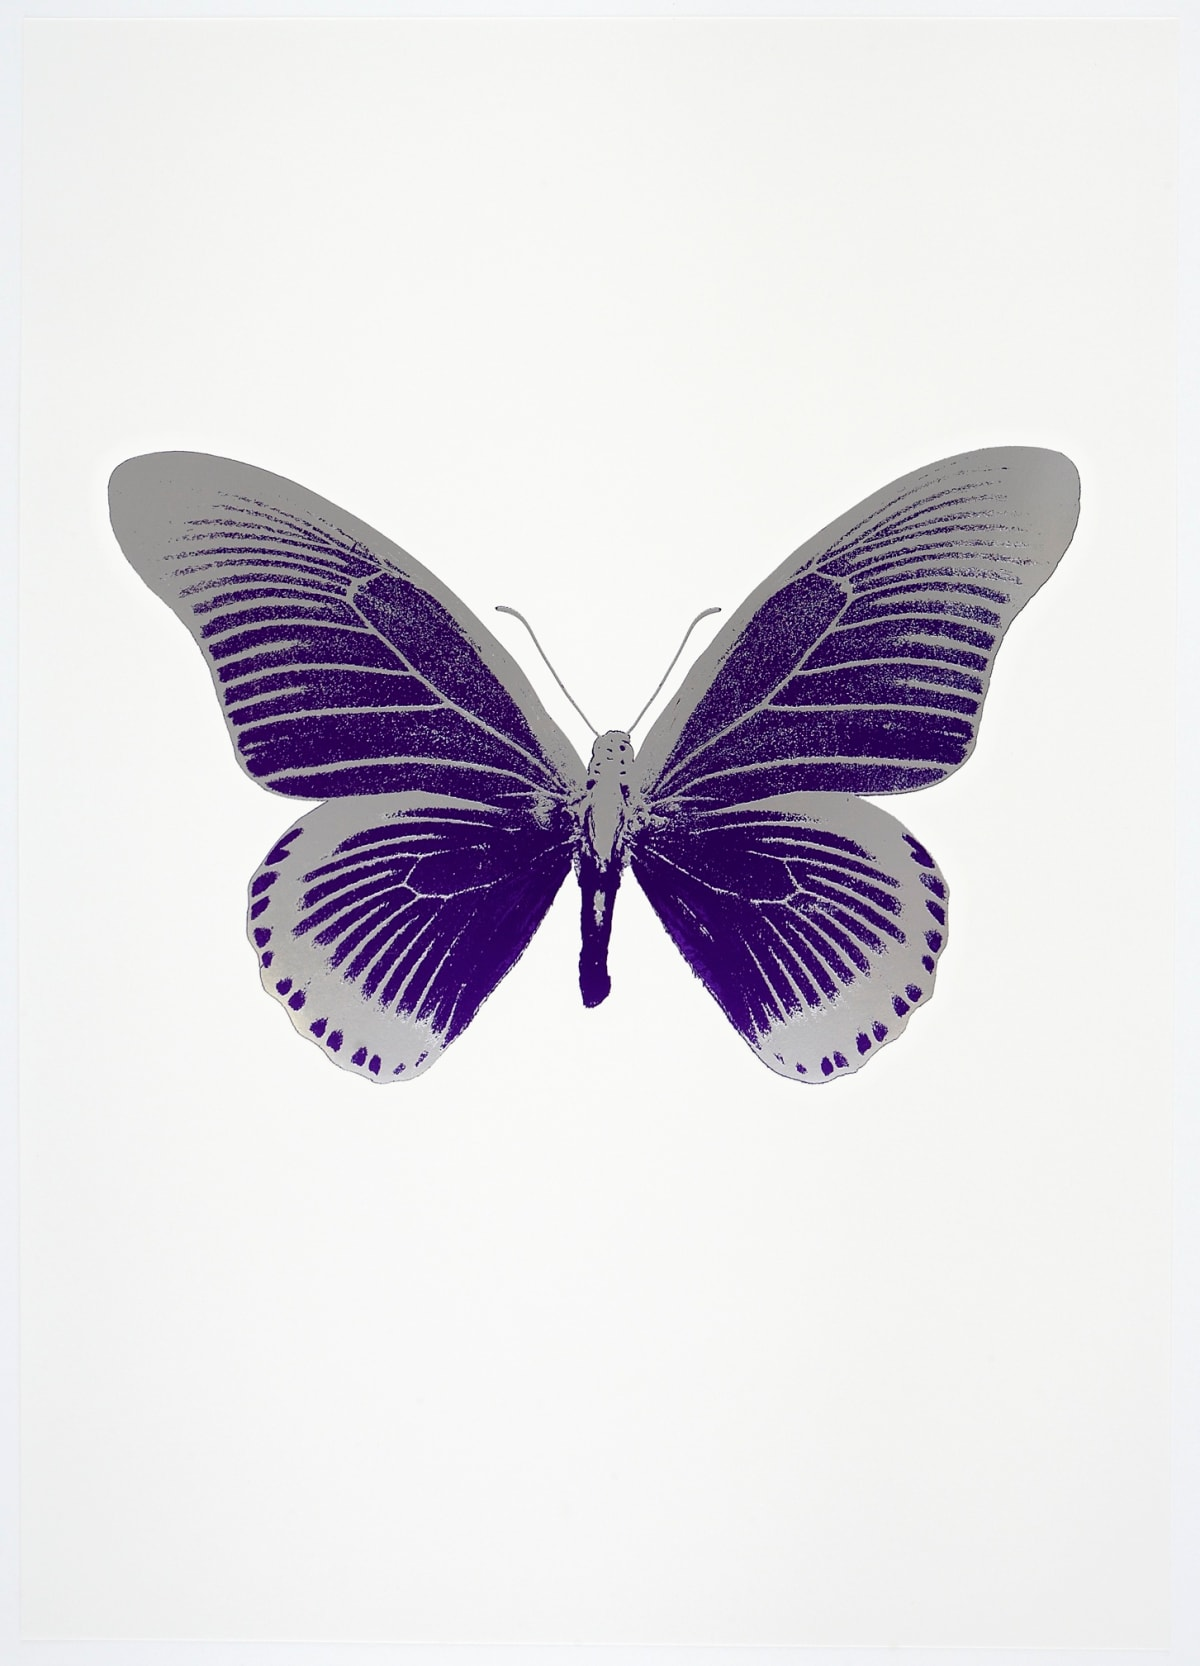 Damien Hirst The Souls IV - Imperial Purple/Silver Gloss, 2010 2 colour foil block on 300gsm Arches 88 archival paper. Signed and numbered. Published by Paul Stolper and Other Criteria 72 x 51cm OC8000 / 1418-23 Edition of 15